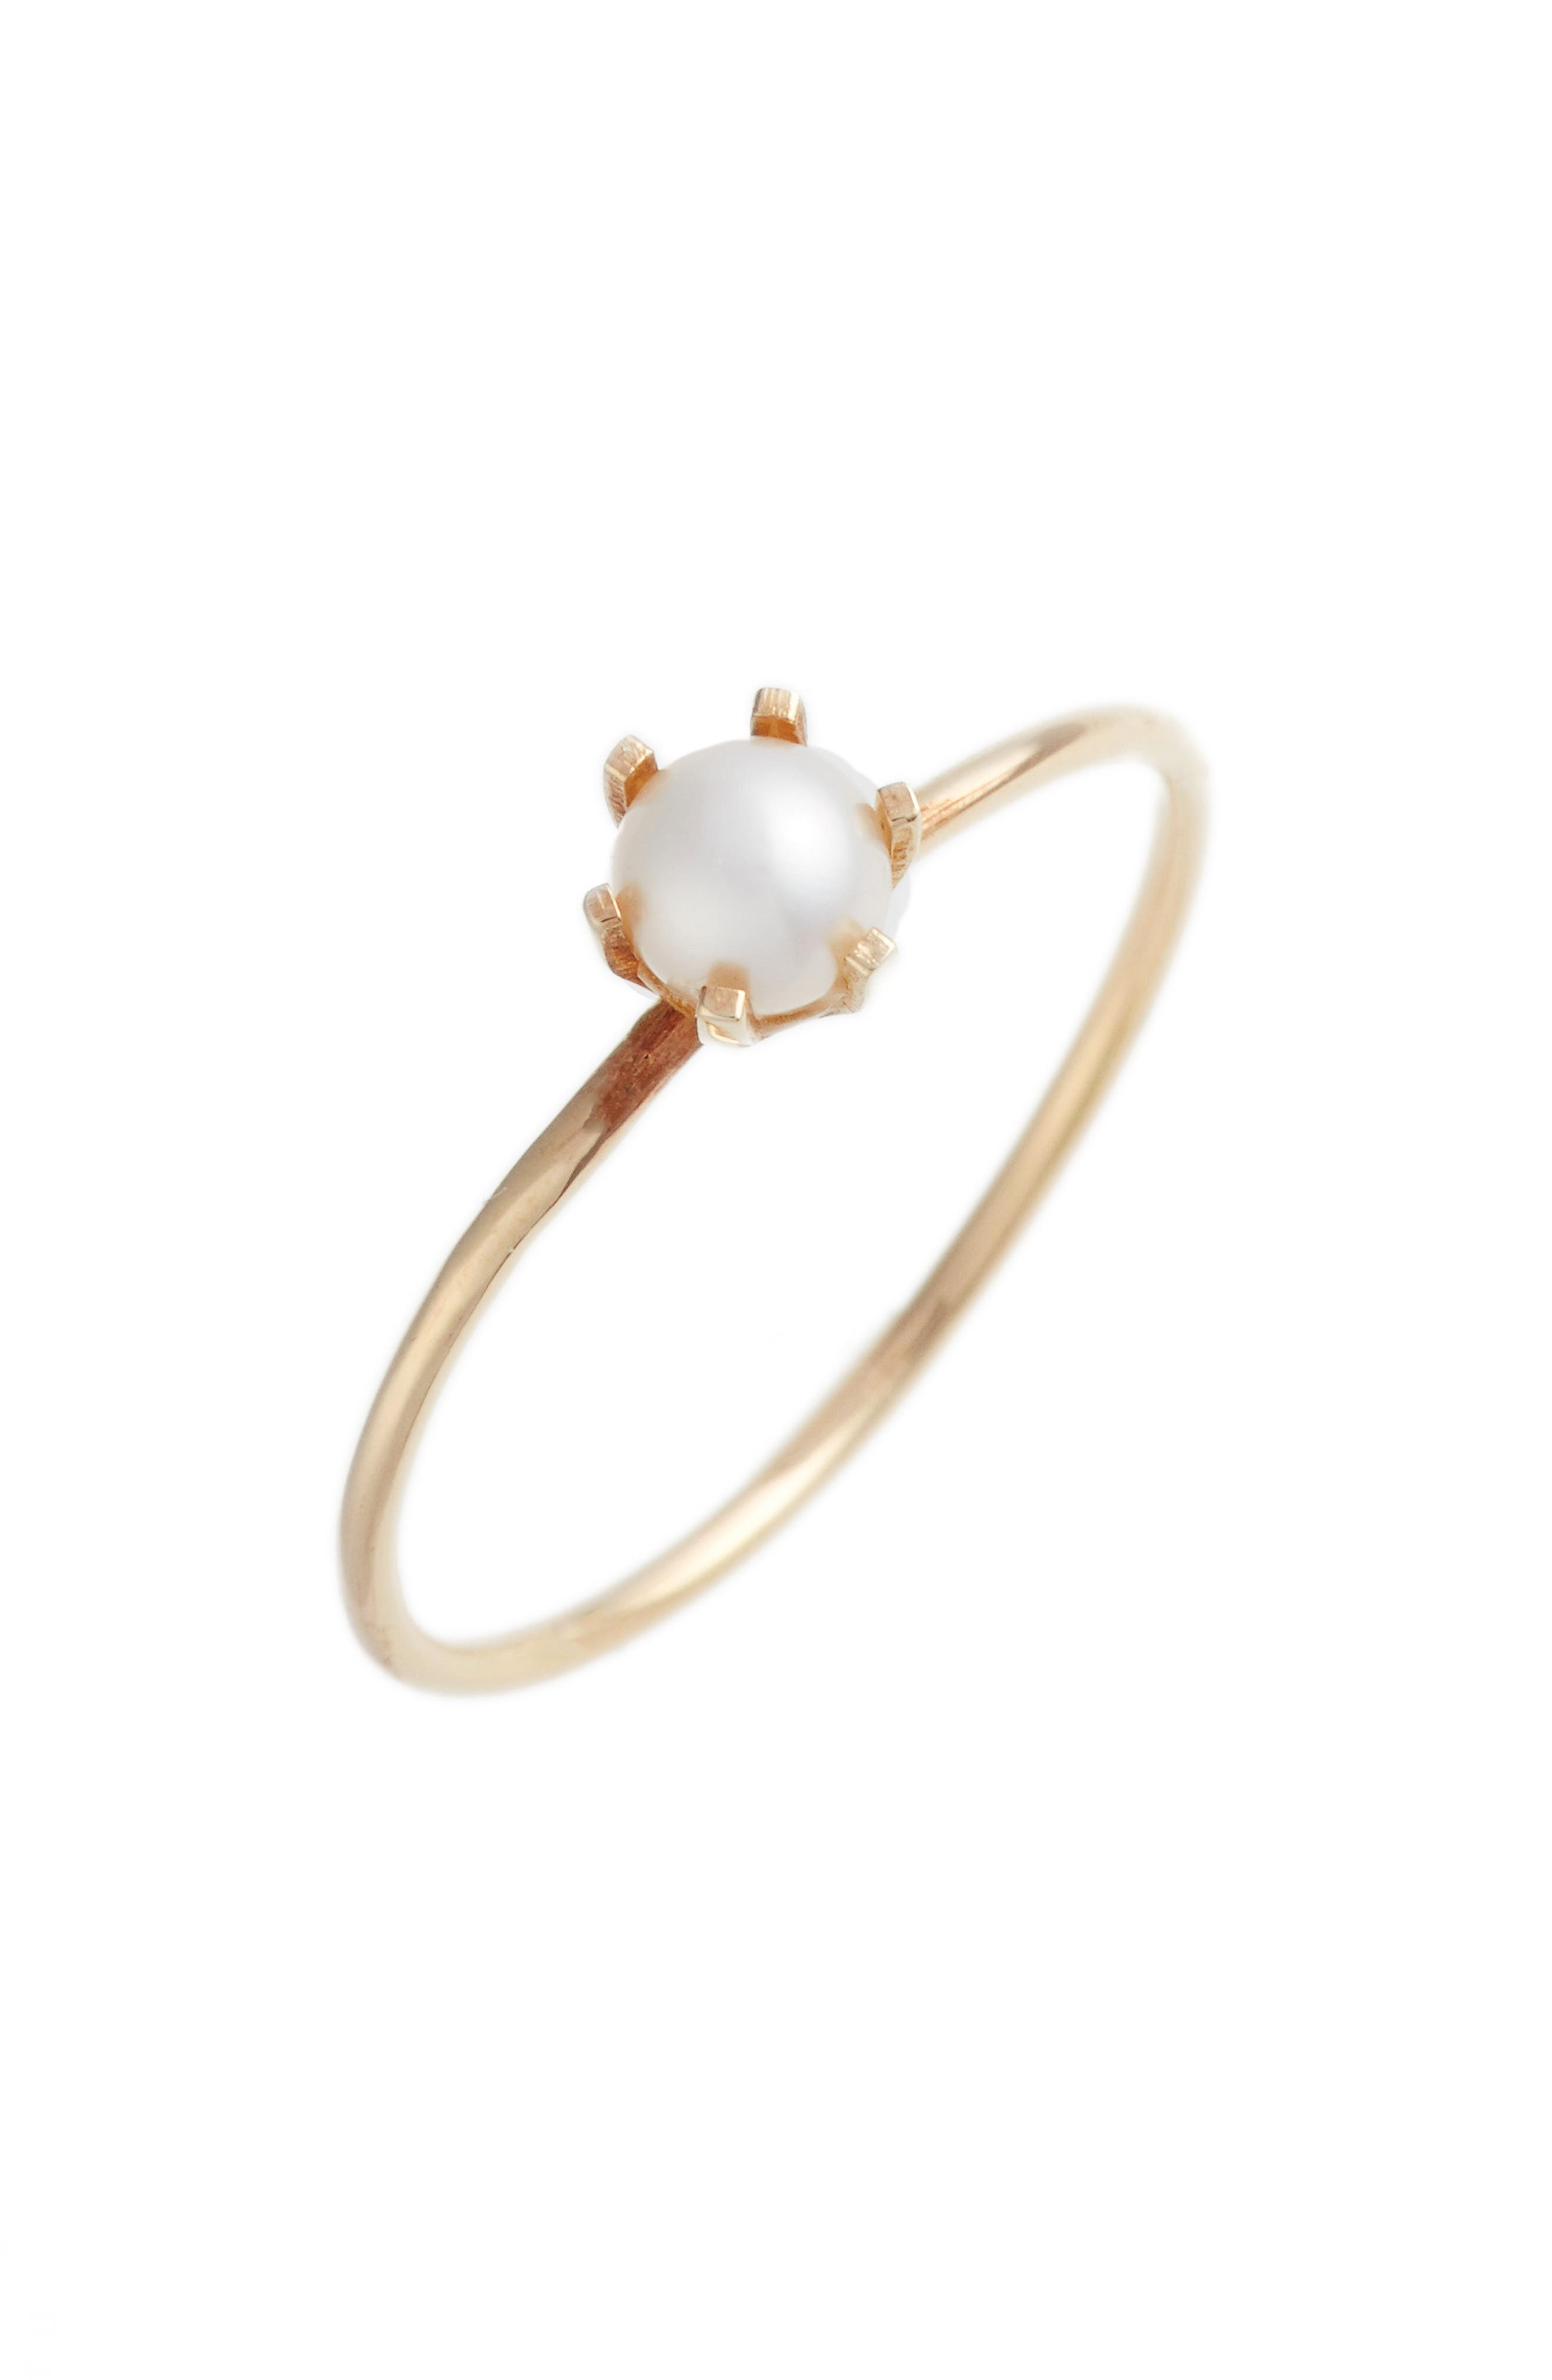 Poppy Finch Pearl Solitaire Ring